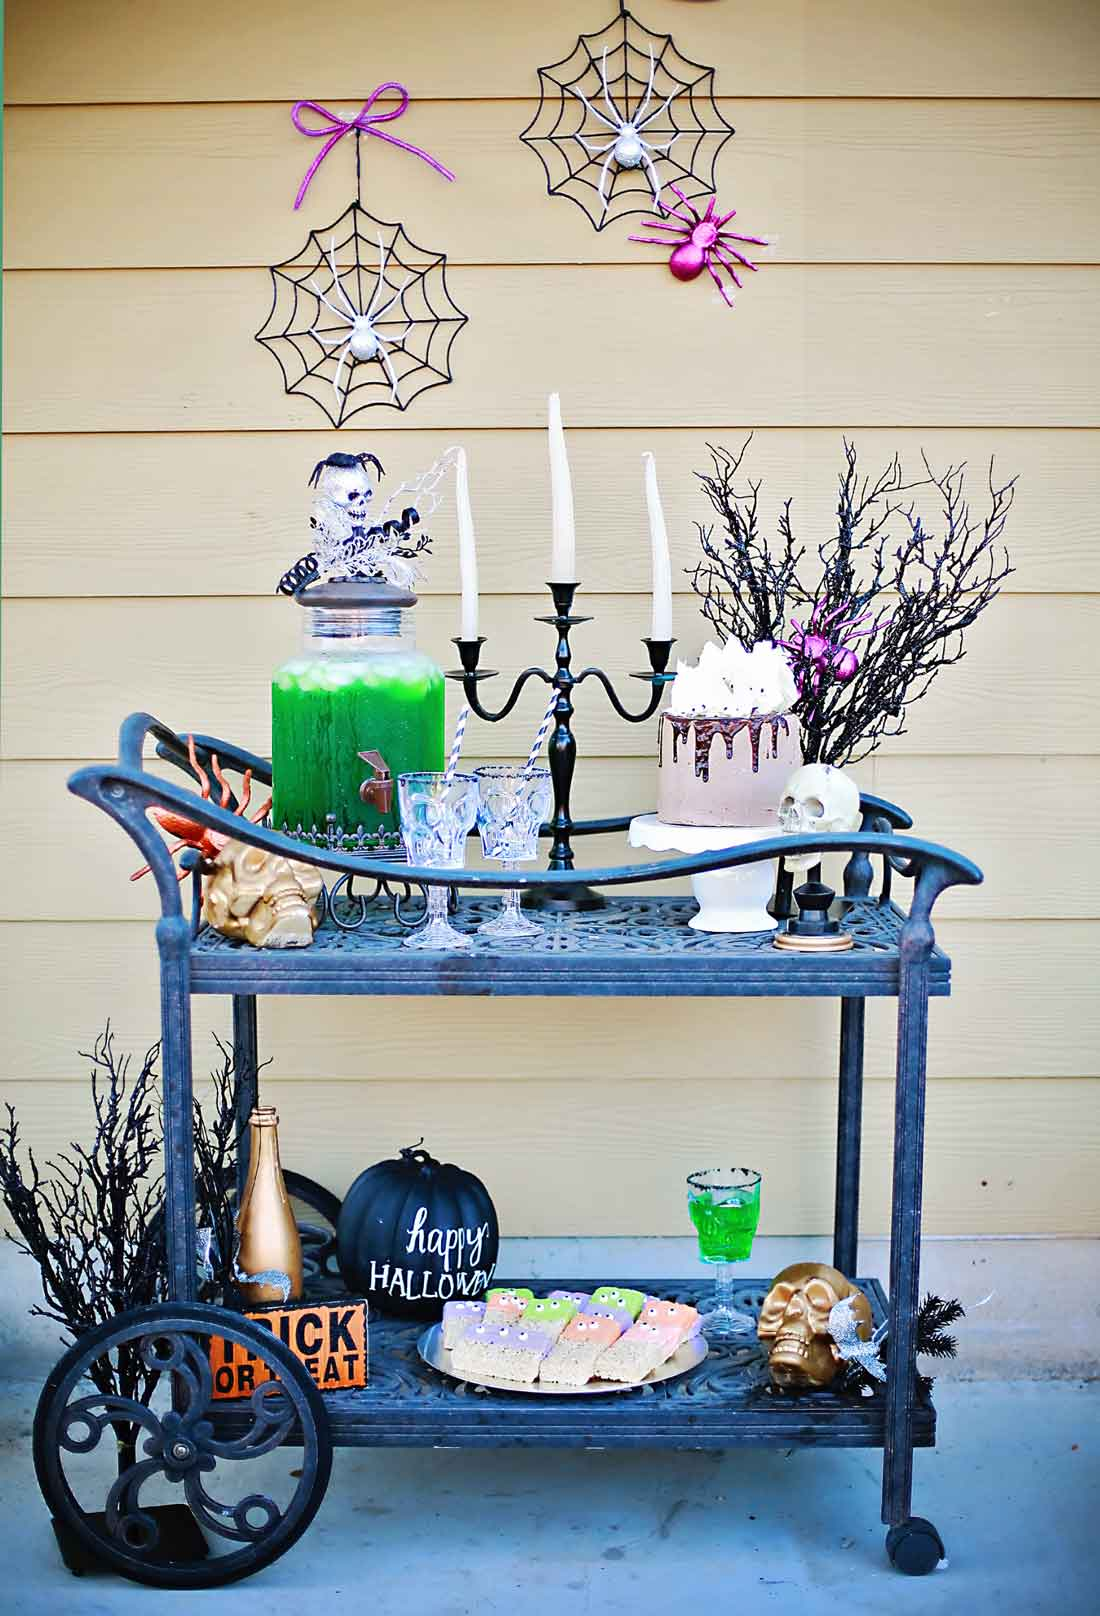 Super Awesome Halloween party with creepy crawler craveyard punch by Flirtign with Flavor!